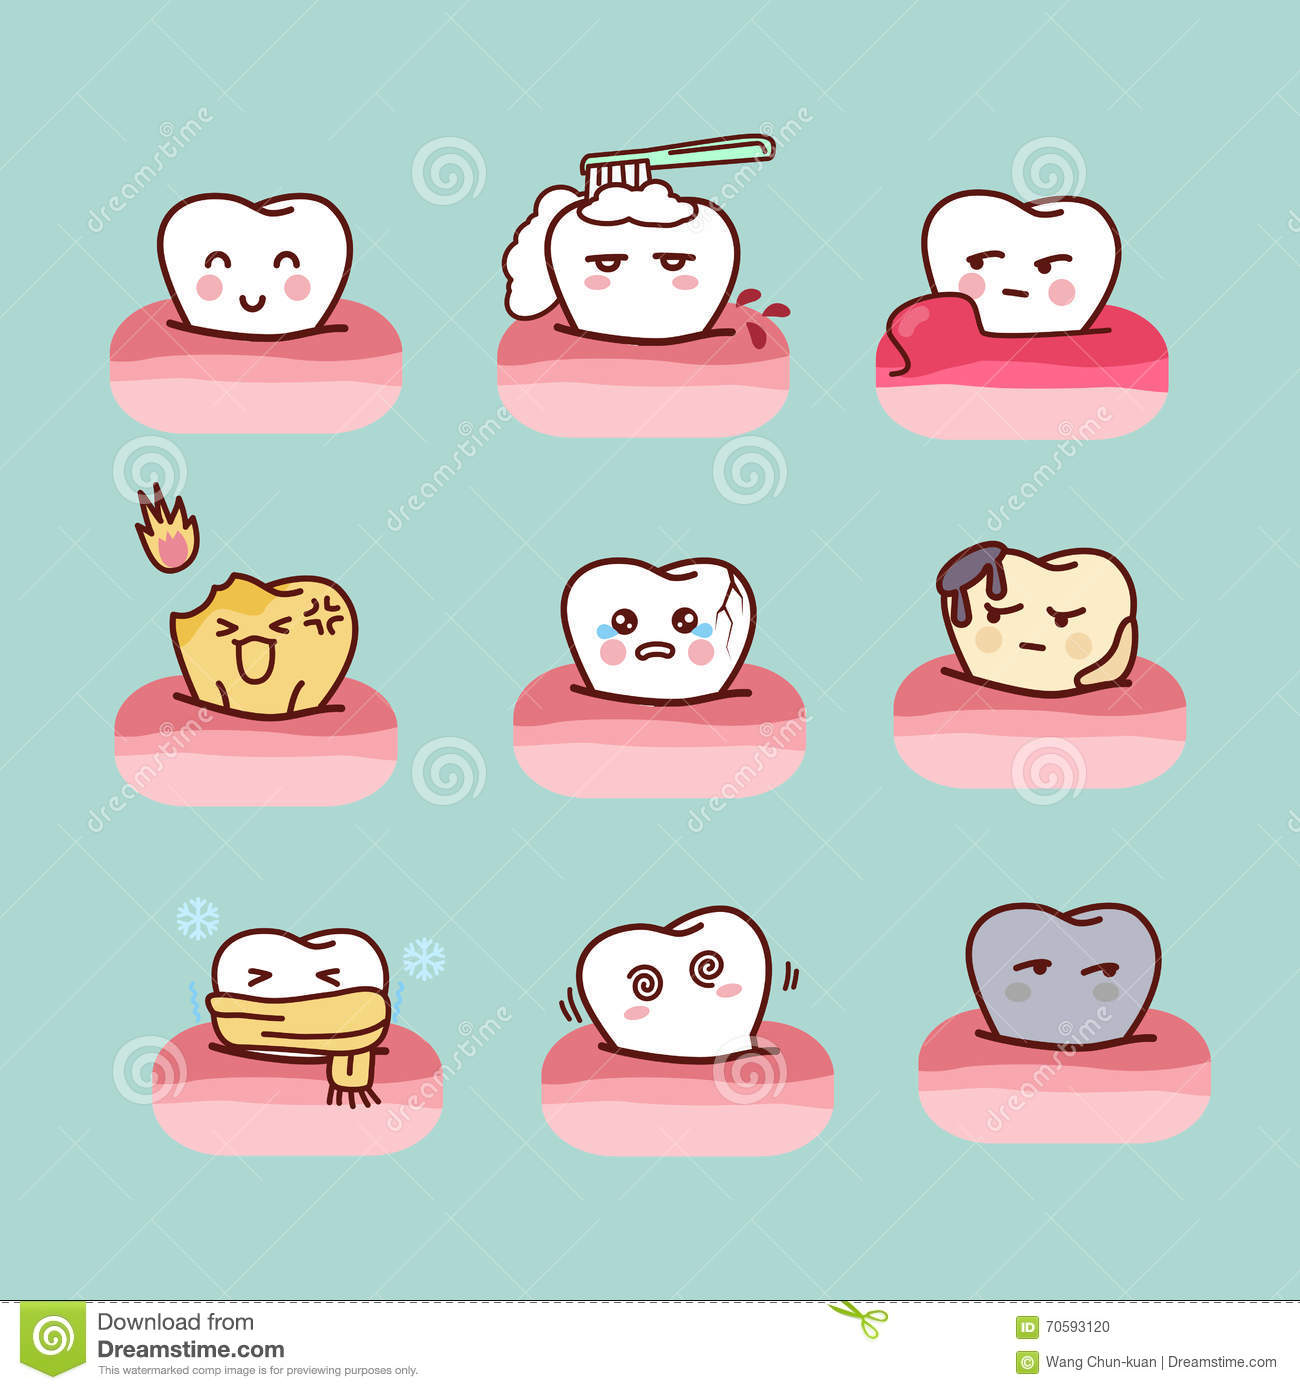 Ten Fluoride Facts as well Stock Photo Milk Box Kawaii Happy Icon Design 124248661 also Alcohol furthermore Stock Photography Happy Gherkin Running Illustration Cartoon Vegetable Smiling Image33752022 together with Mouth Clip Art Image 51558. on healthy mouth cartoon